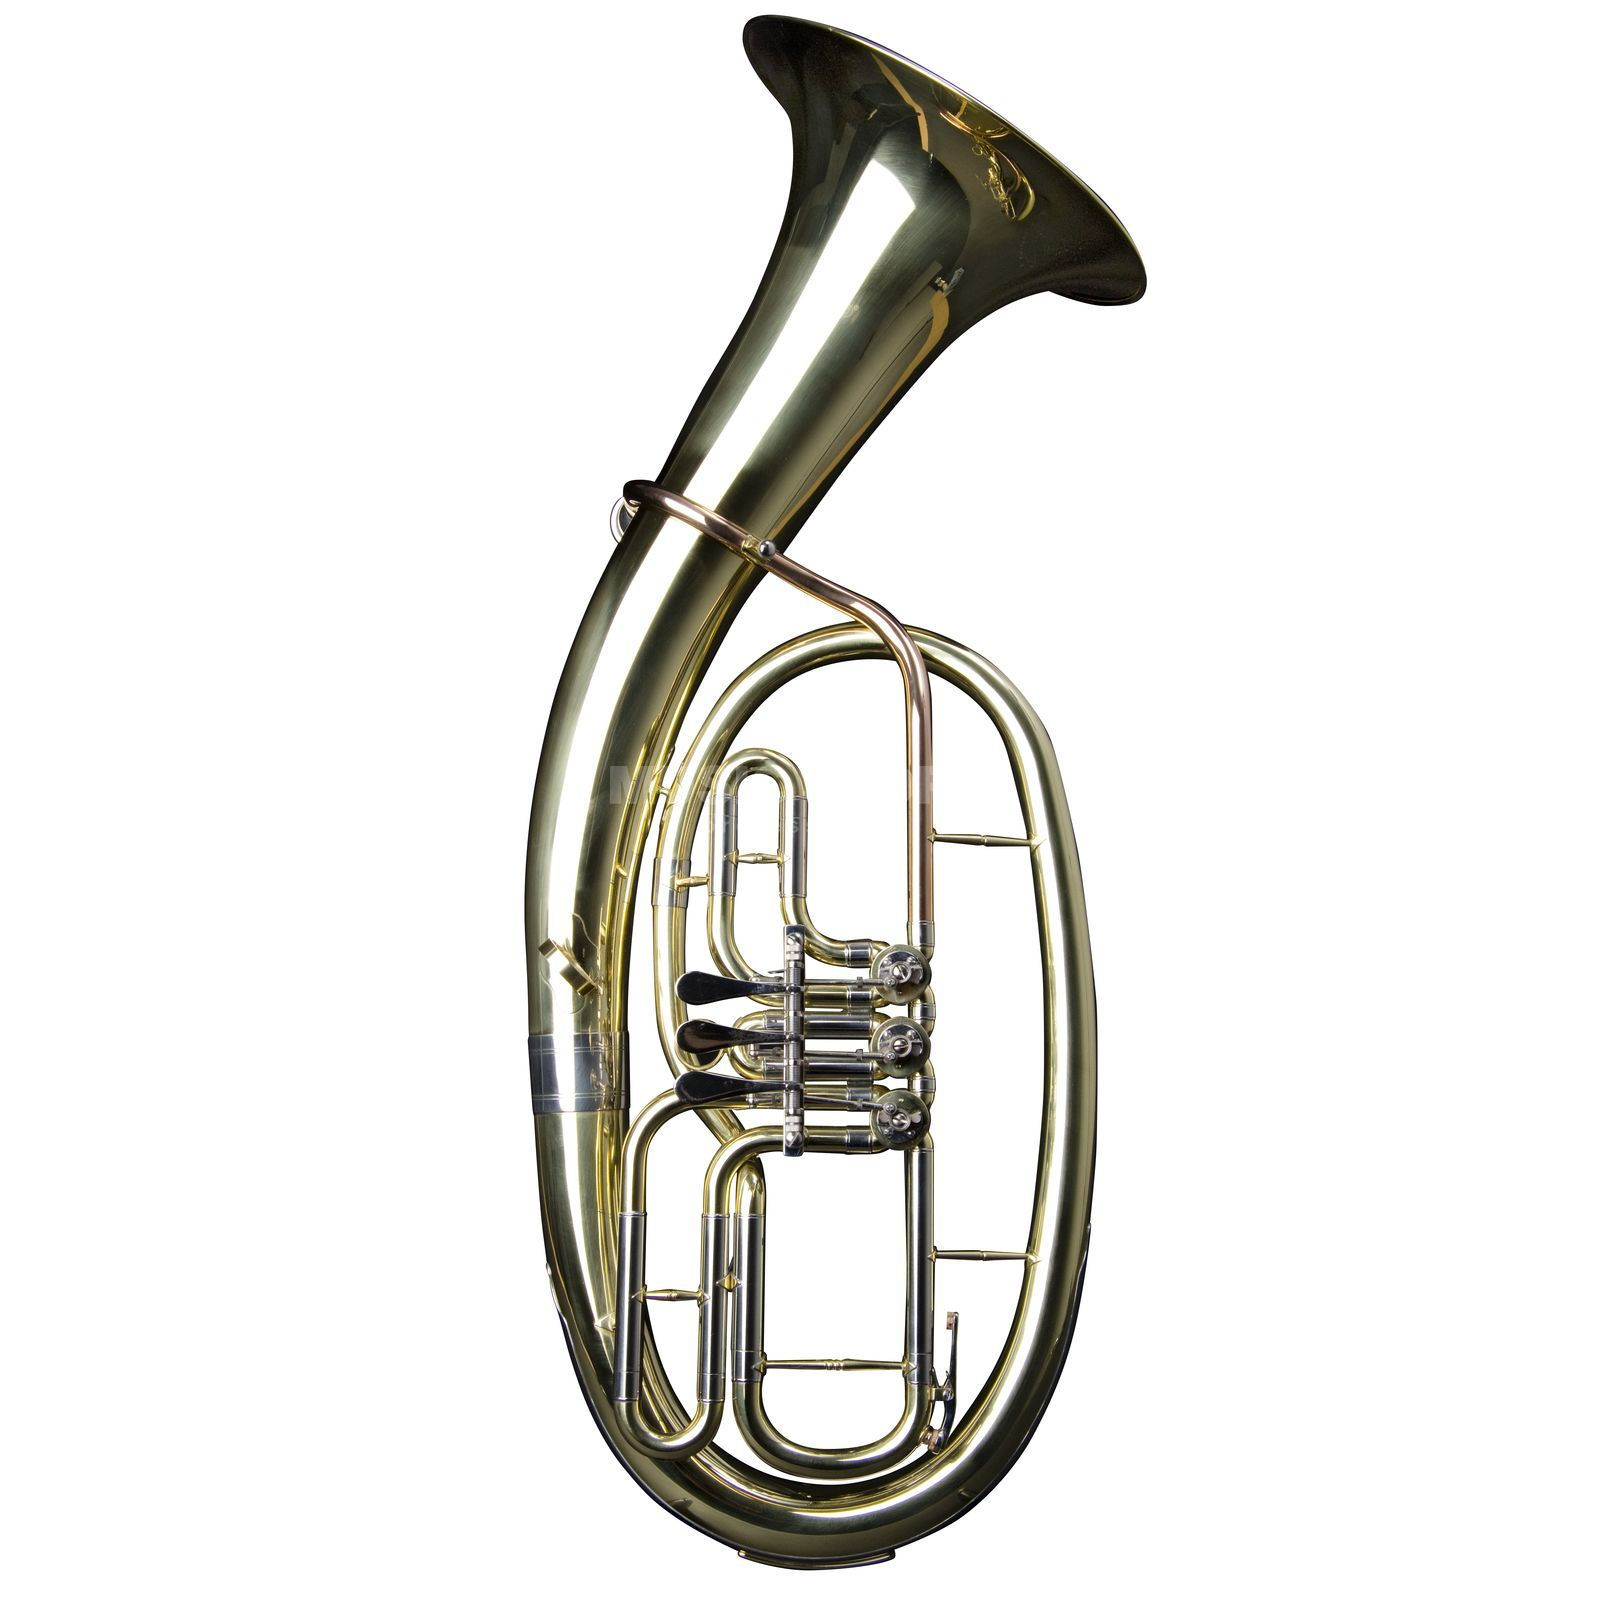 Monzani MZBR-1211L Bb-Tenor Horn Brass, Lacquered, 3 Valves Product Image